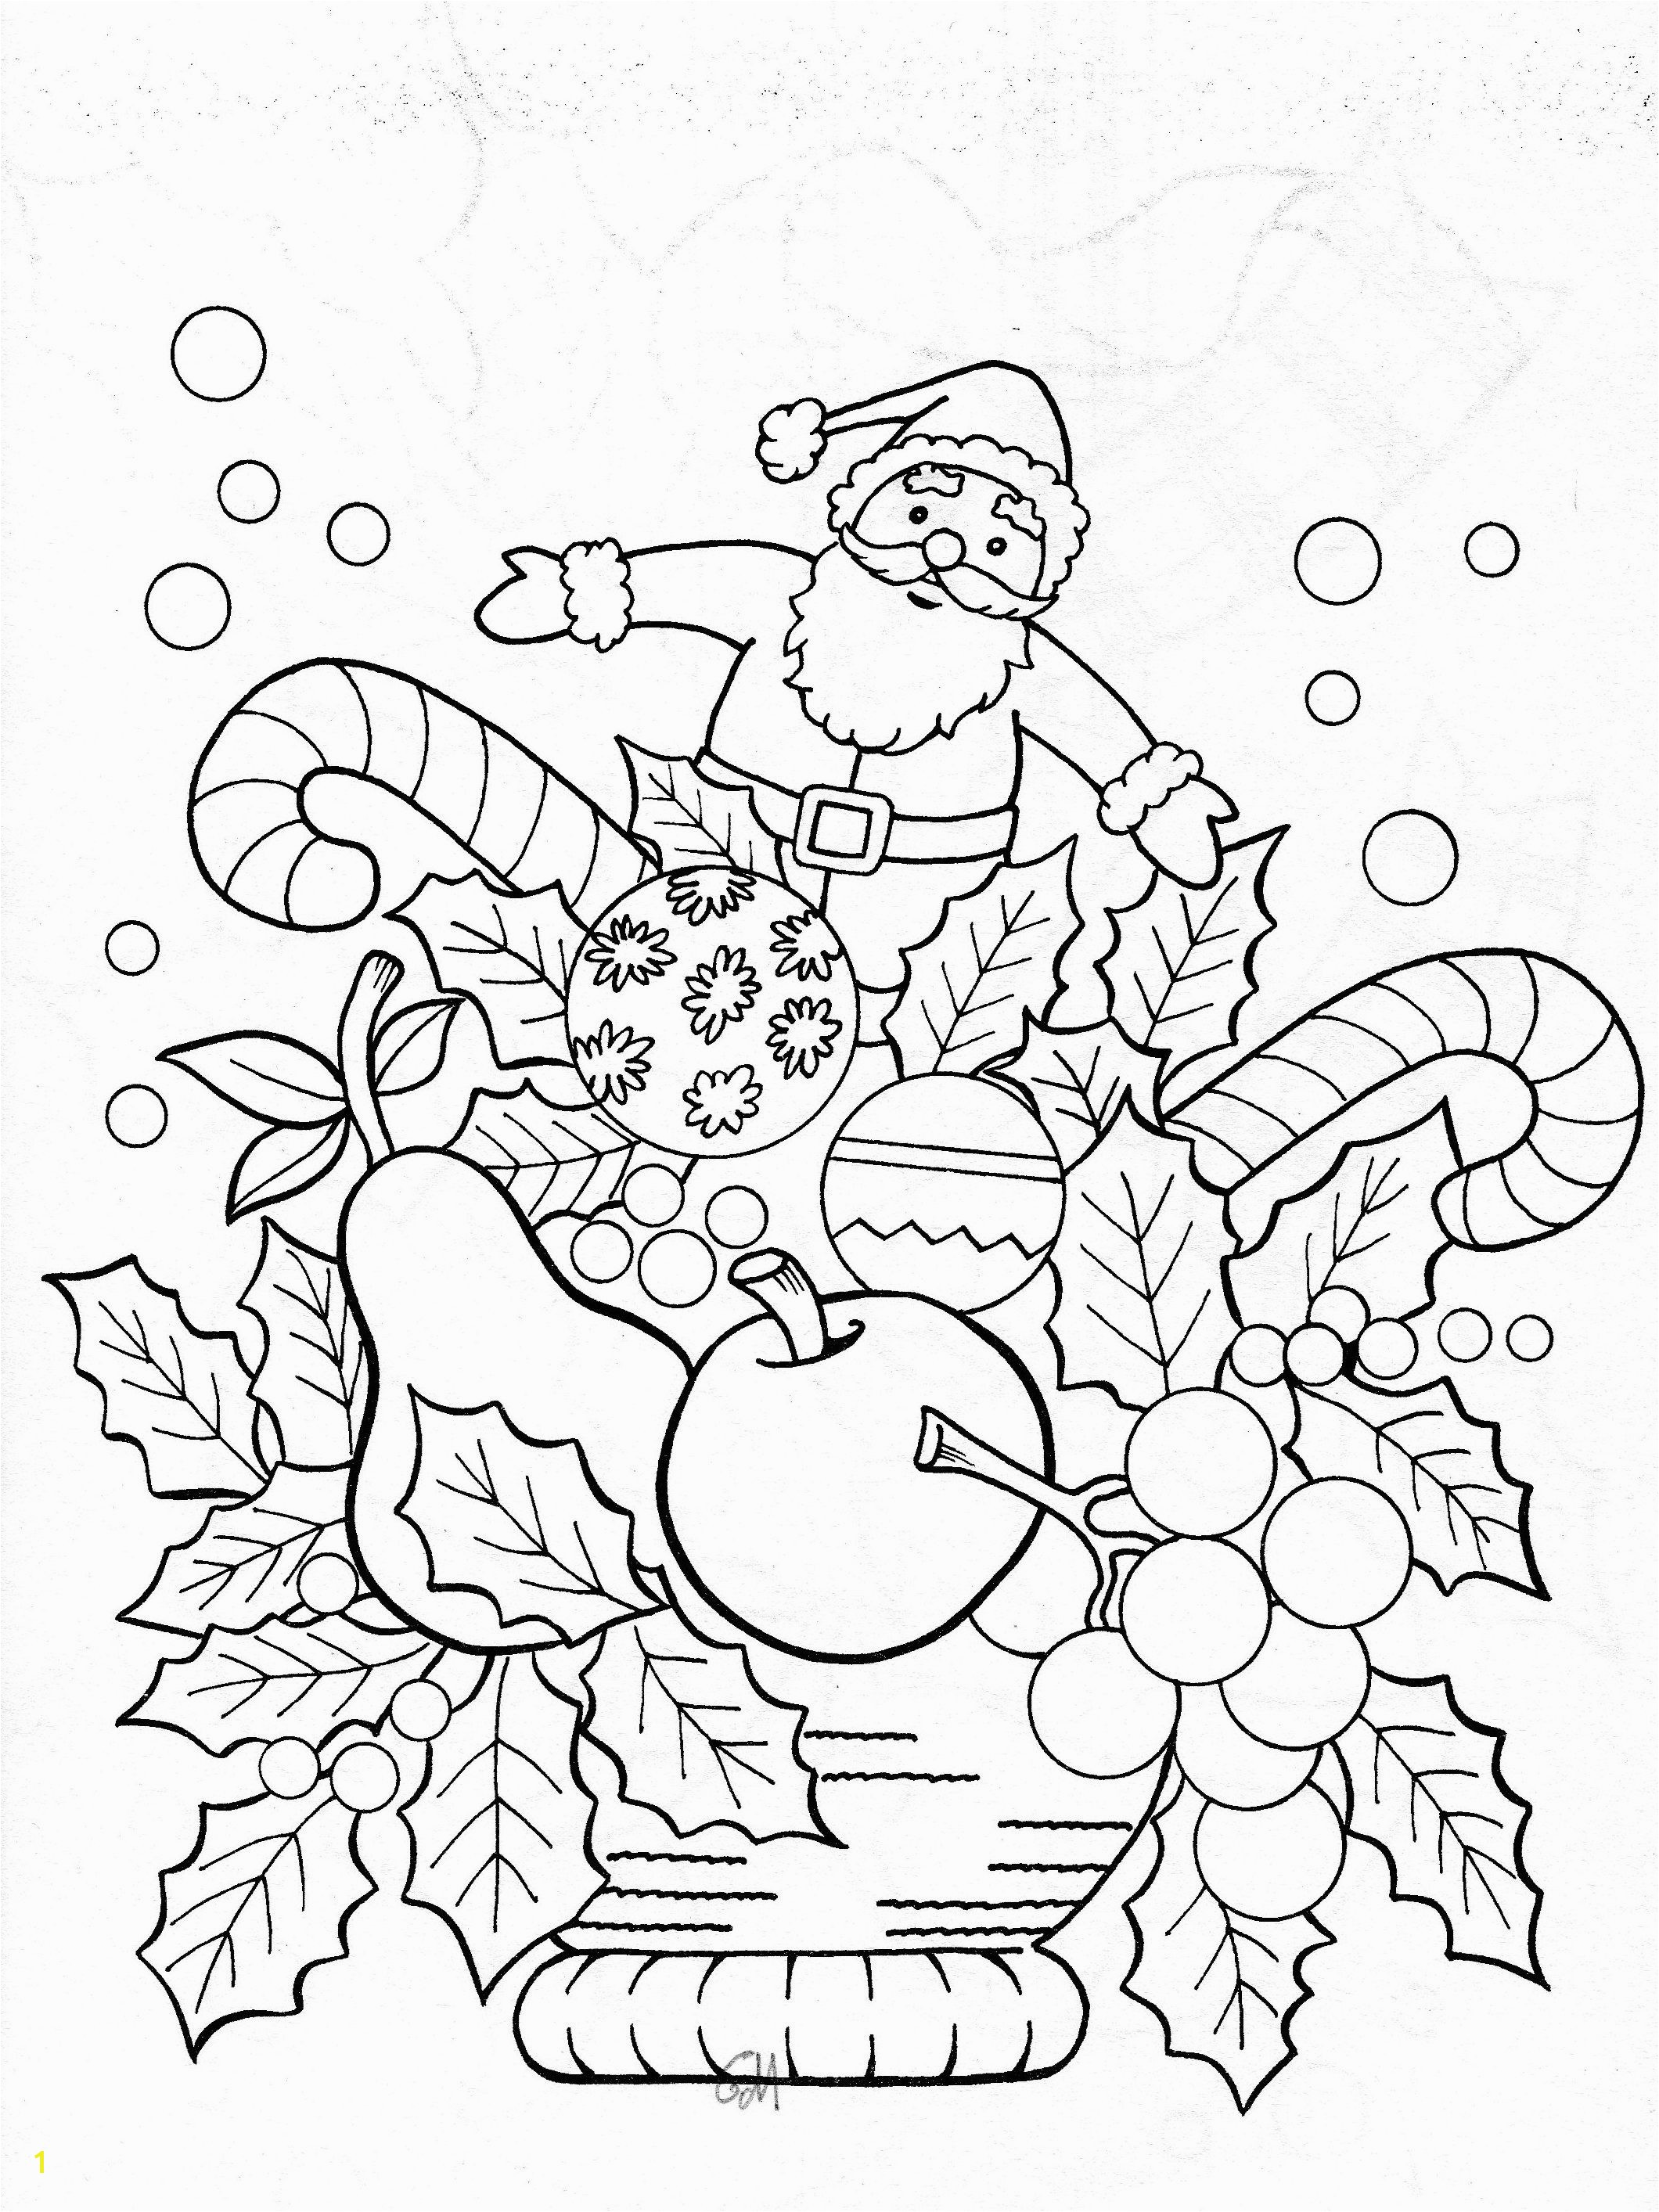 Stitch Christmas Coloring Pages Pin by Jana Kučerová On Vánoce Pinterest